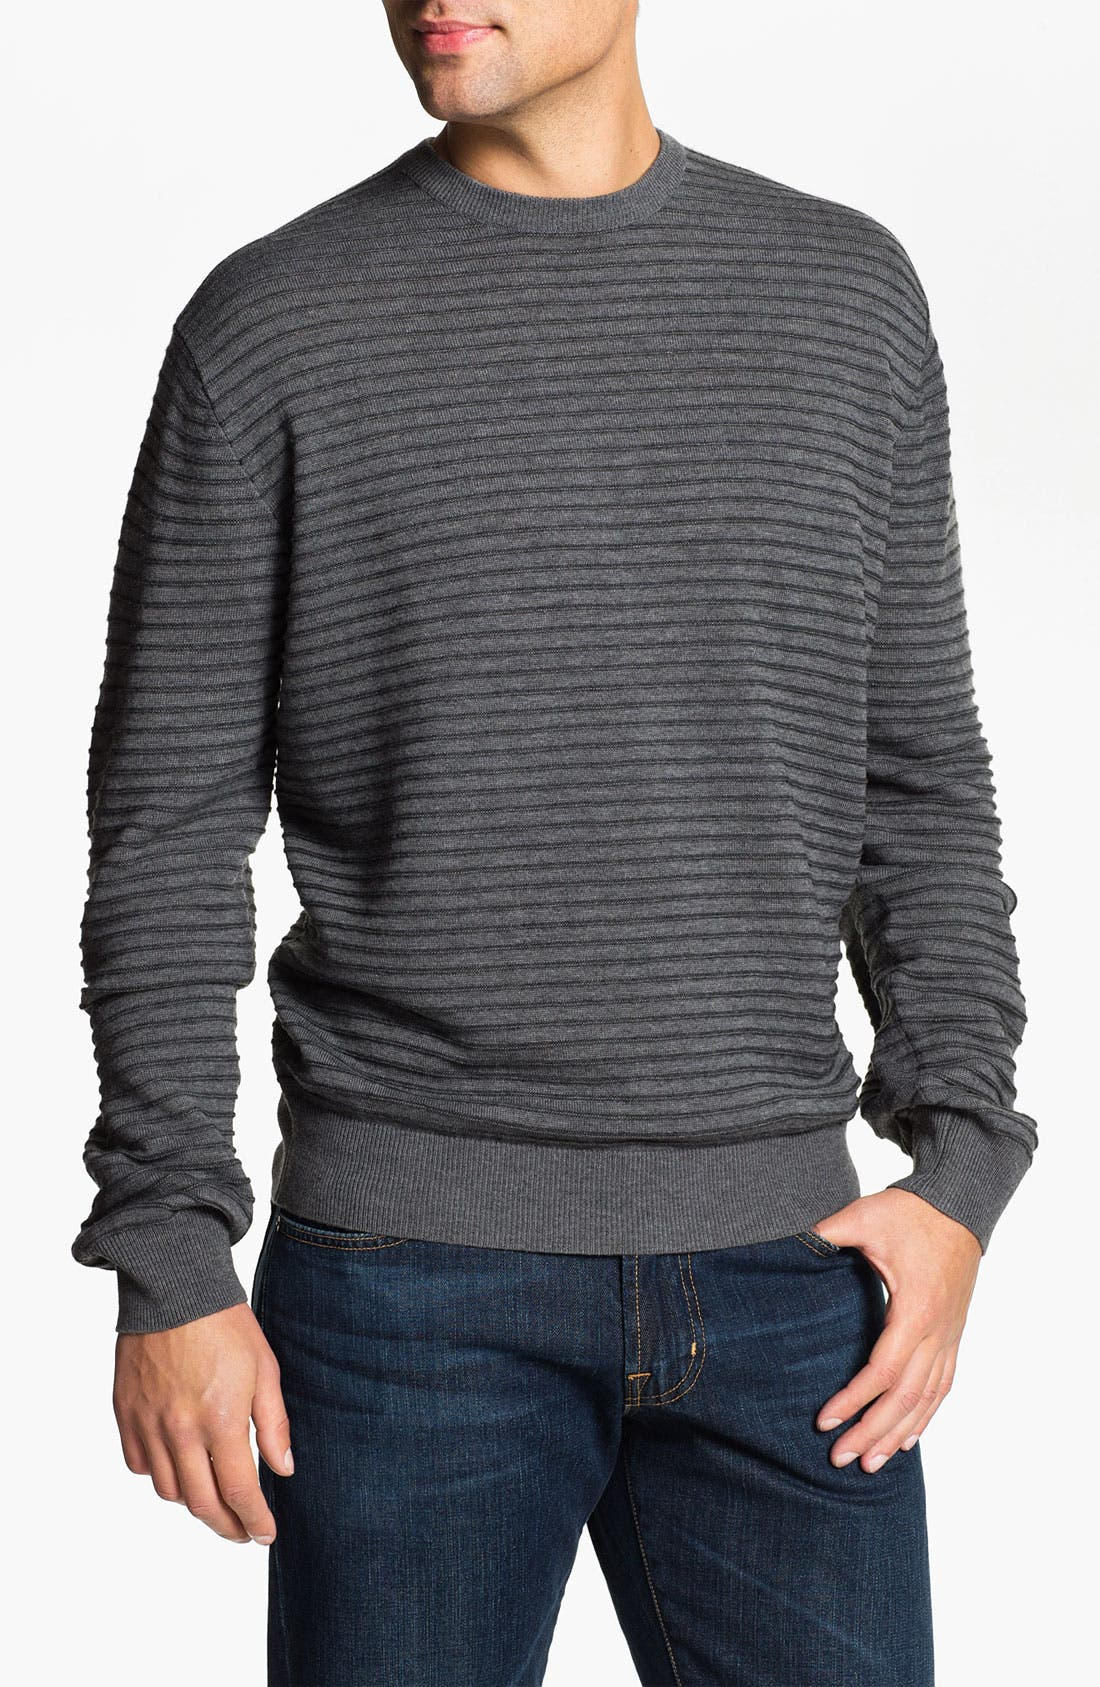 Alternate Image 1 Selected - Toscano Merino Wool Blend Crewneck Sweater